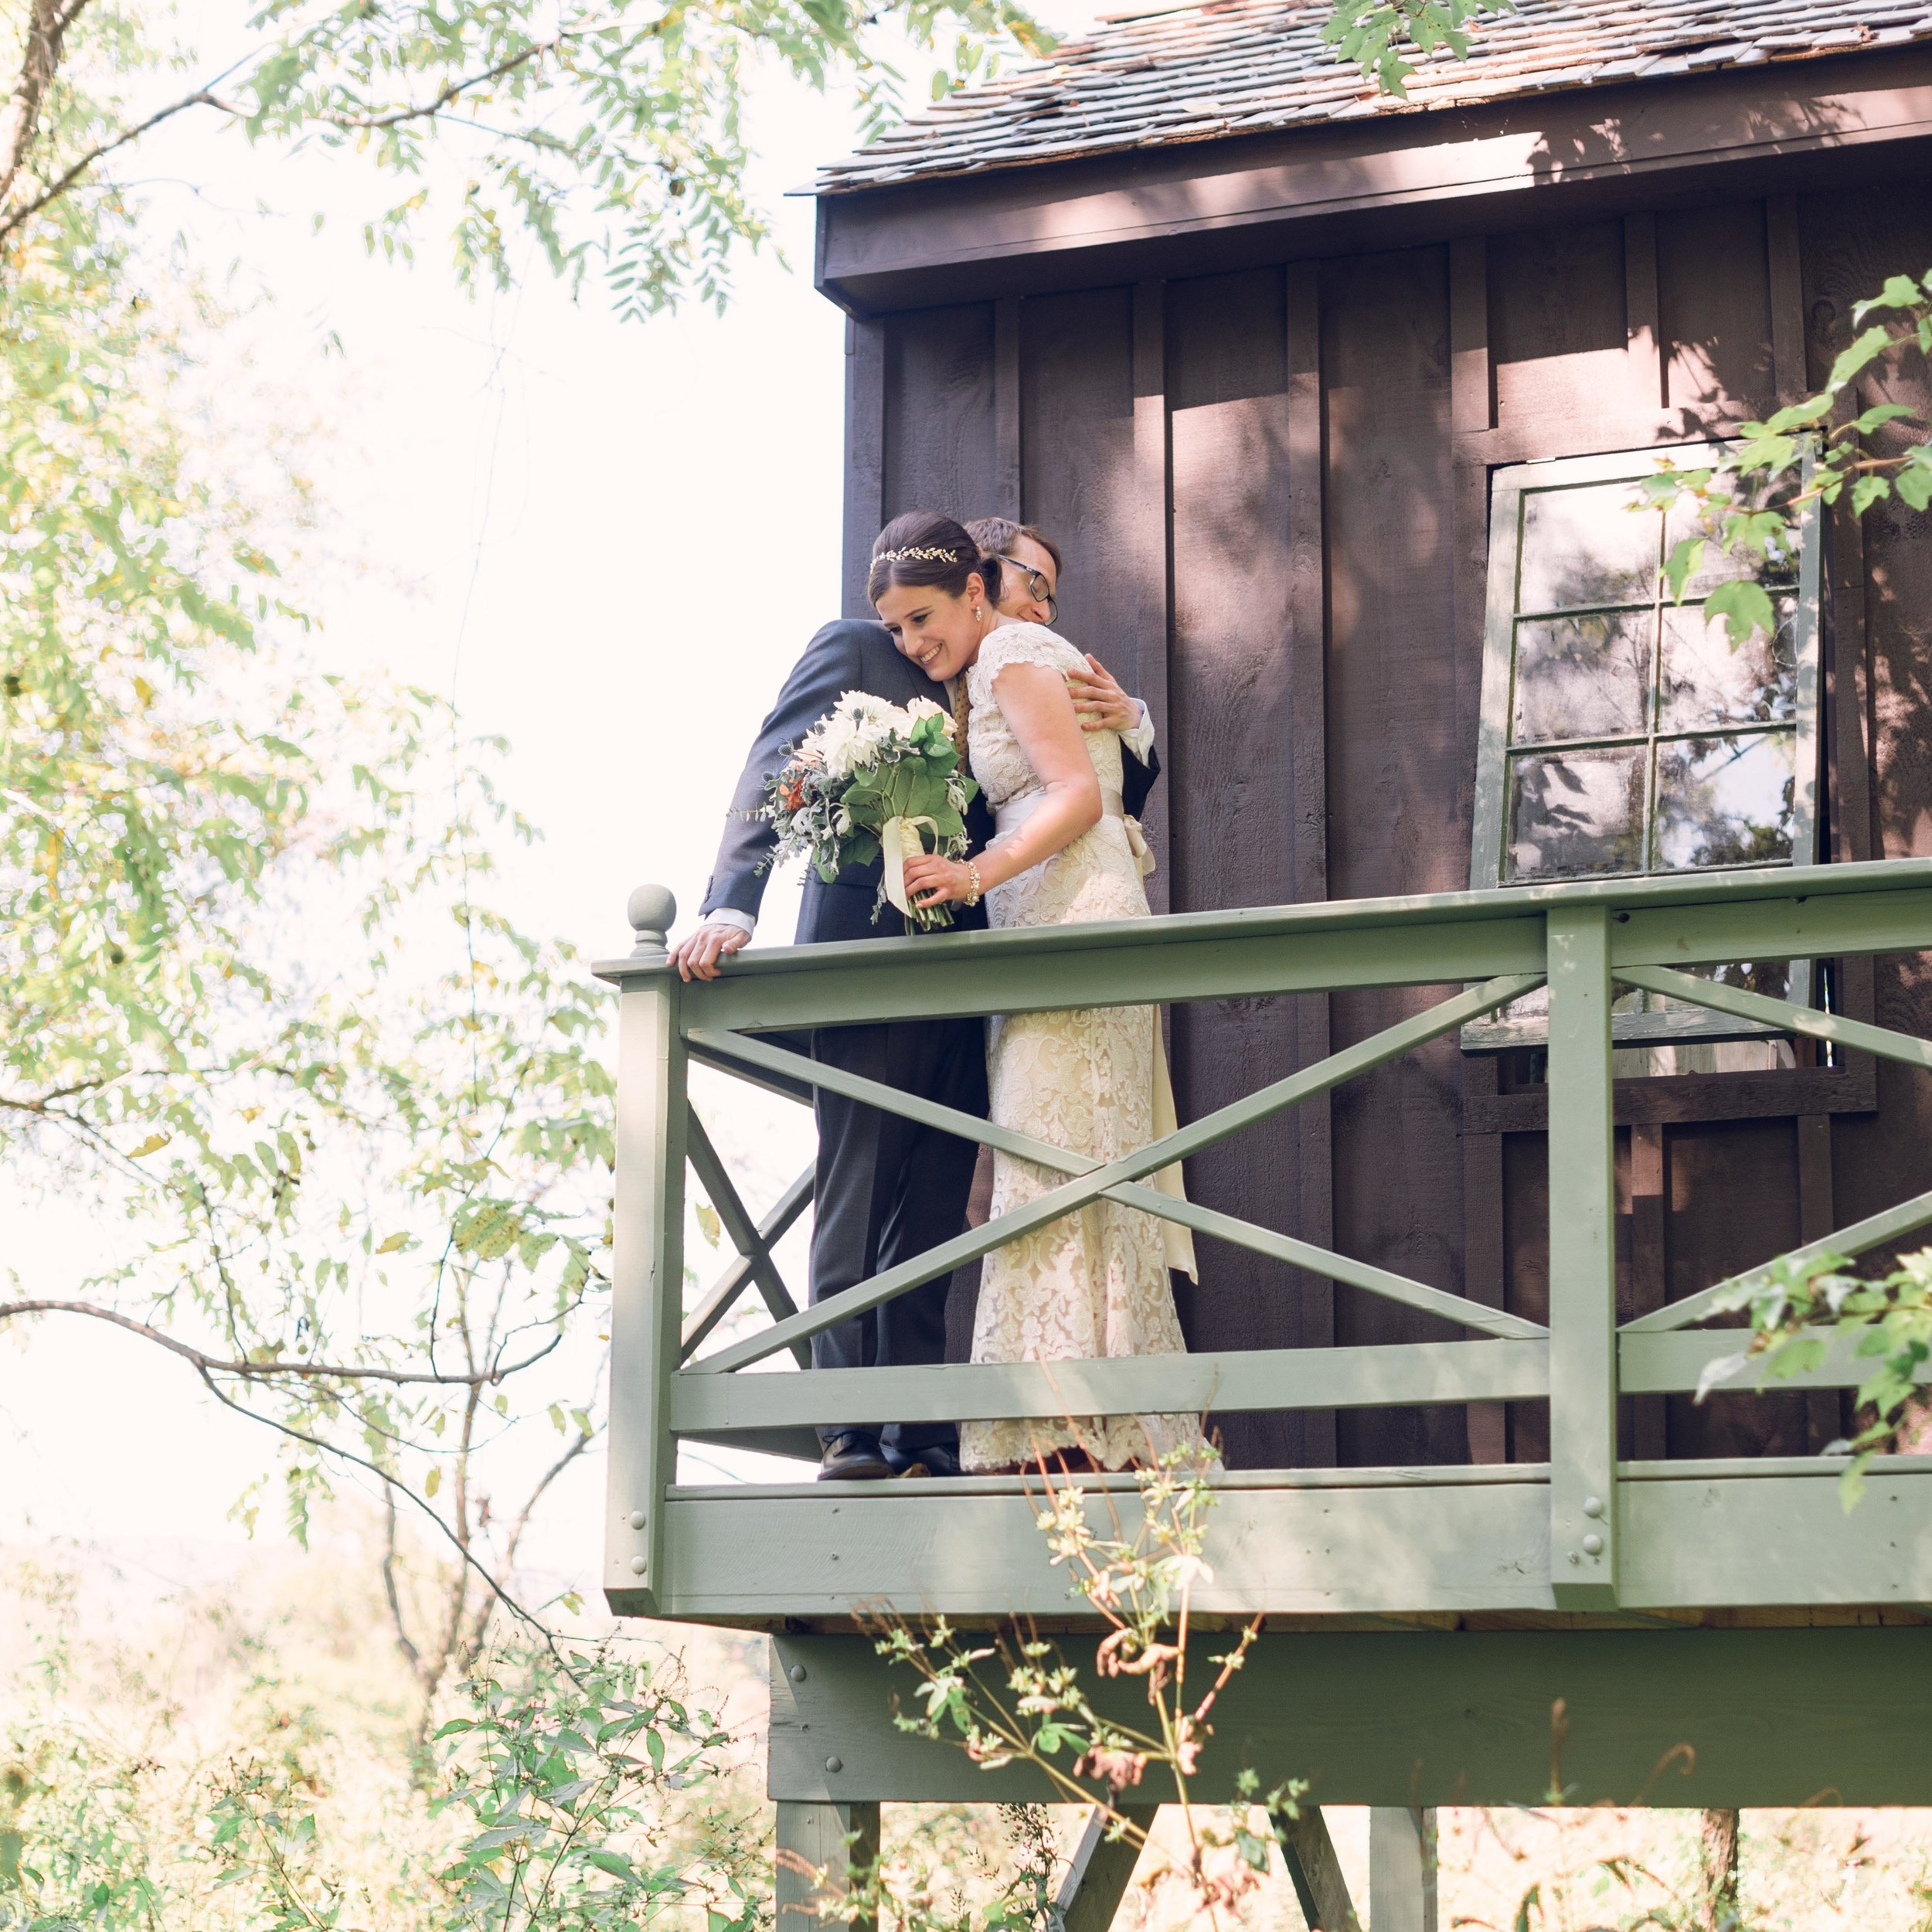 The Treehouse - What could be better than sneaking off with your love, for a few moments alone in your own private treehouse? This treehouse is located near the Woodland and is the perfect retreat for your first few moments as a married couple.Photo Courtesy of Photography Du Jour